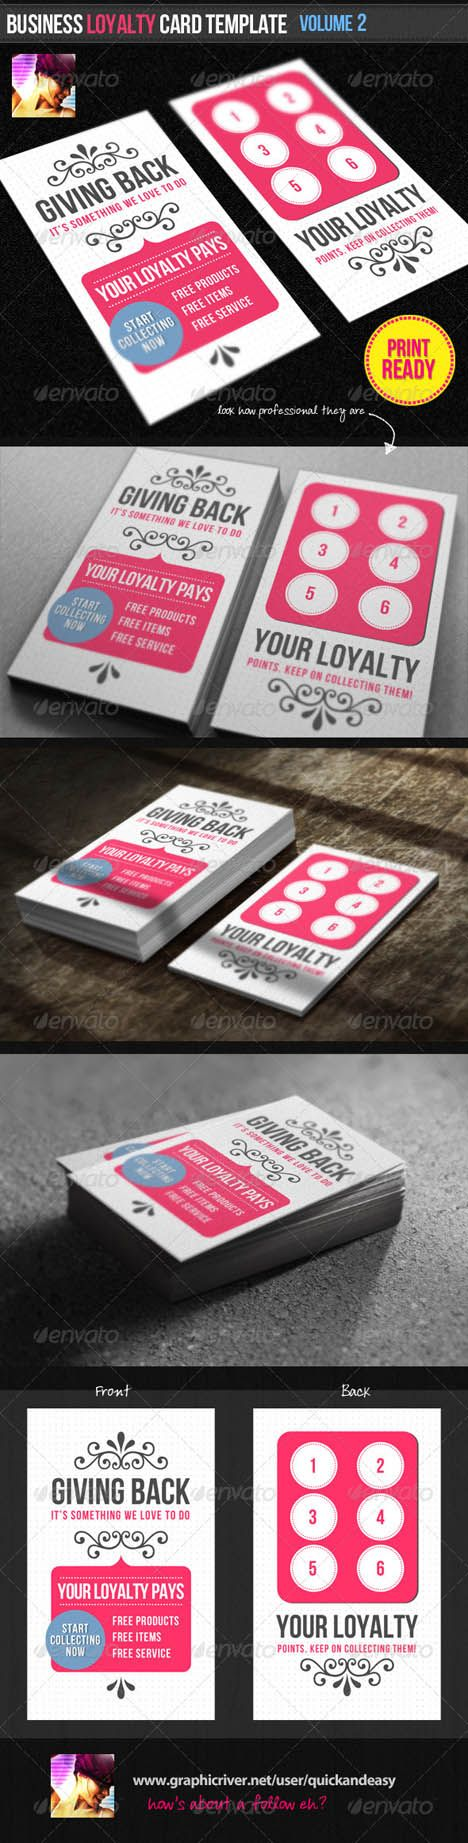 business loyalty card template cool creative unique business card showcasing on coolest business card